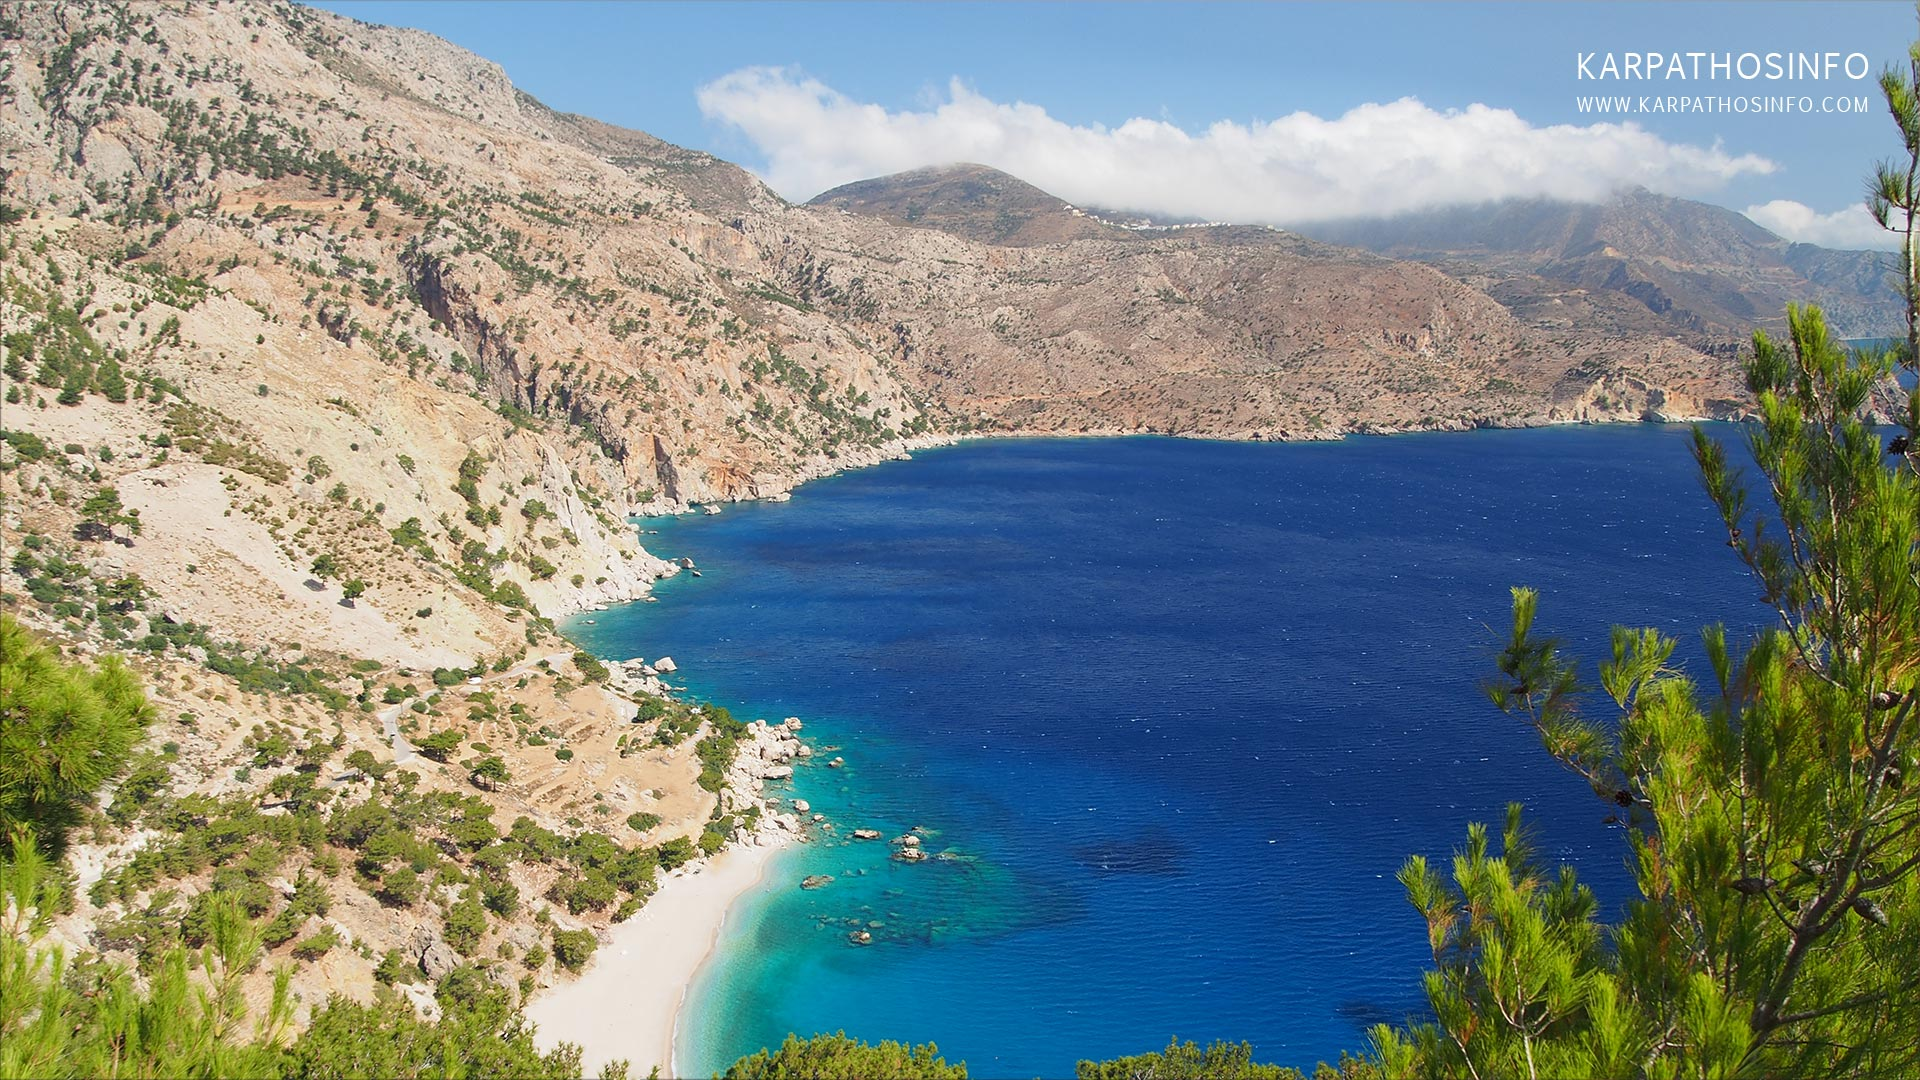 images/slider/the-best-sights-and-panoramas-in-karpathos.jpg